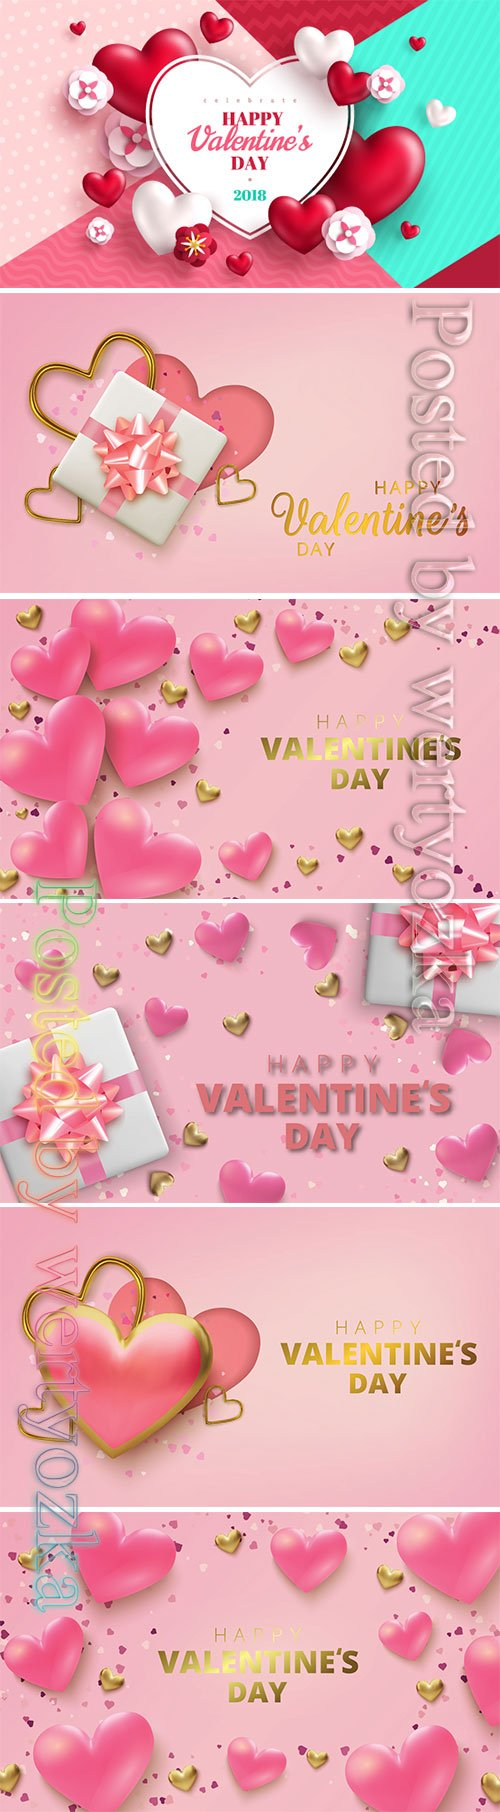 Valentines day vector background with heart # 5